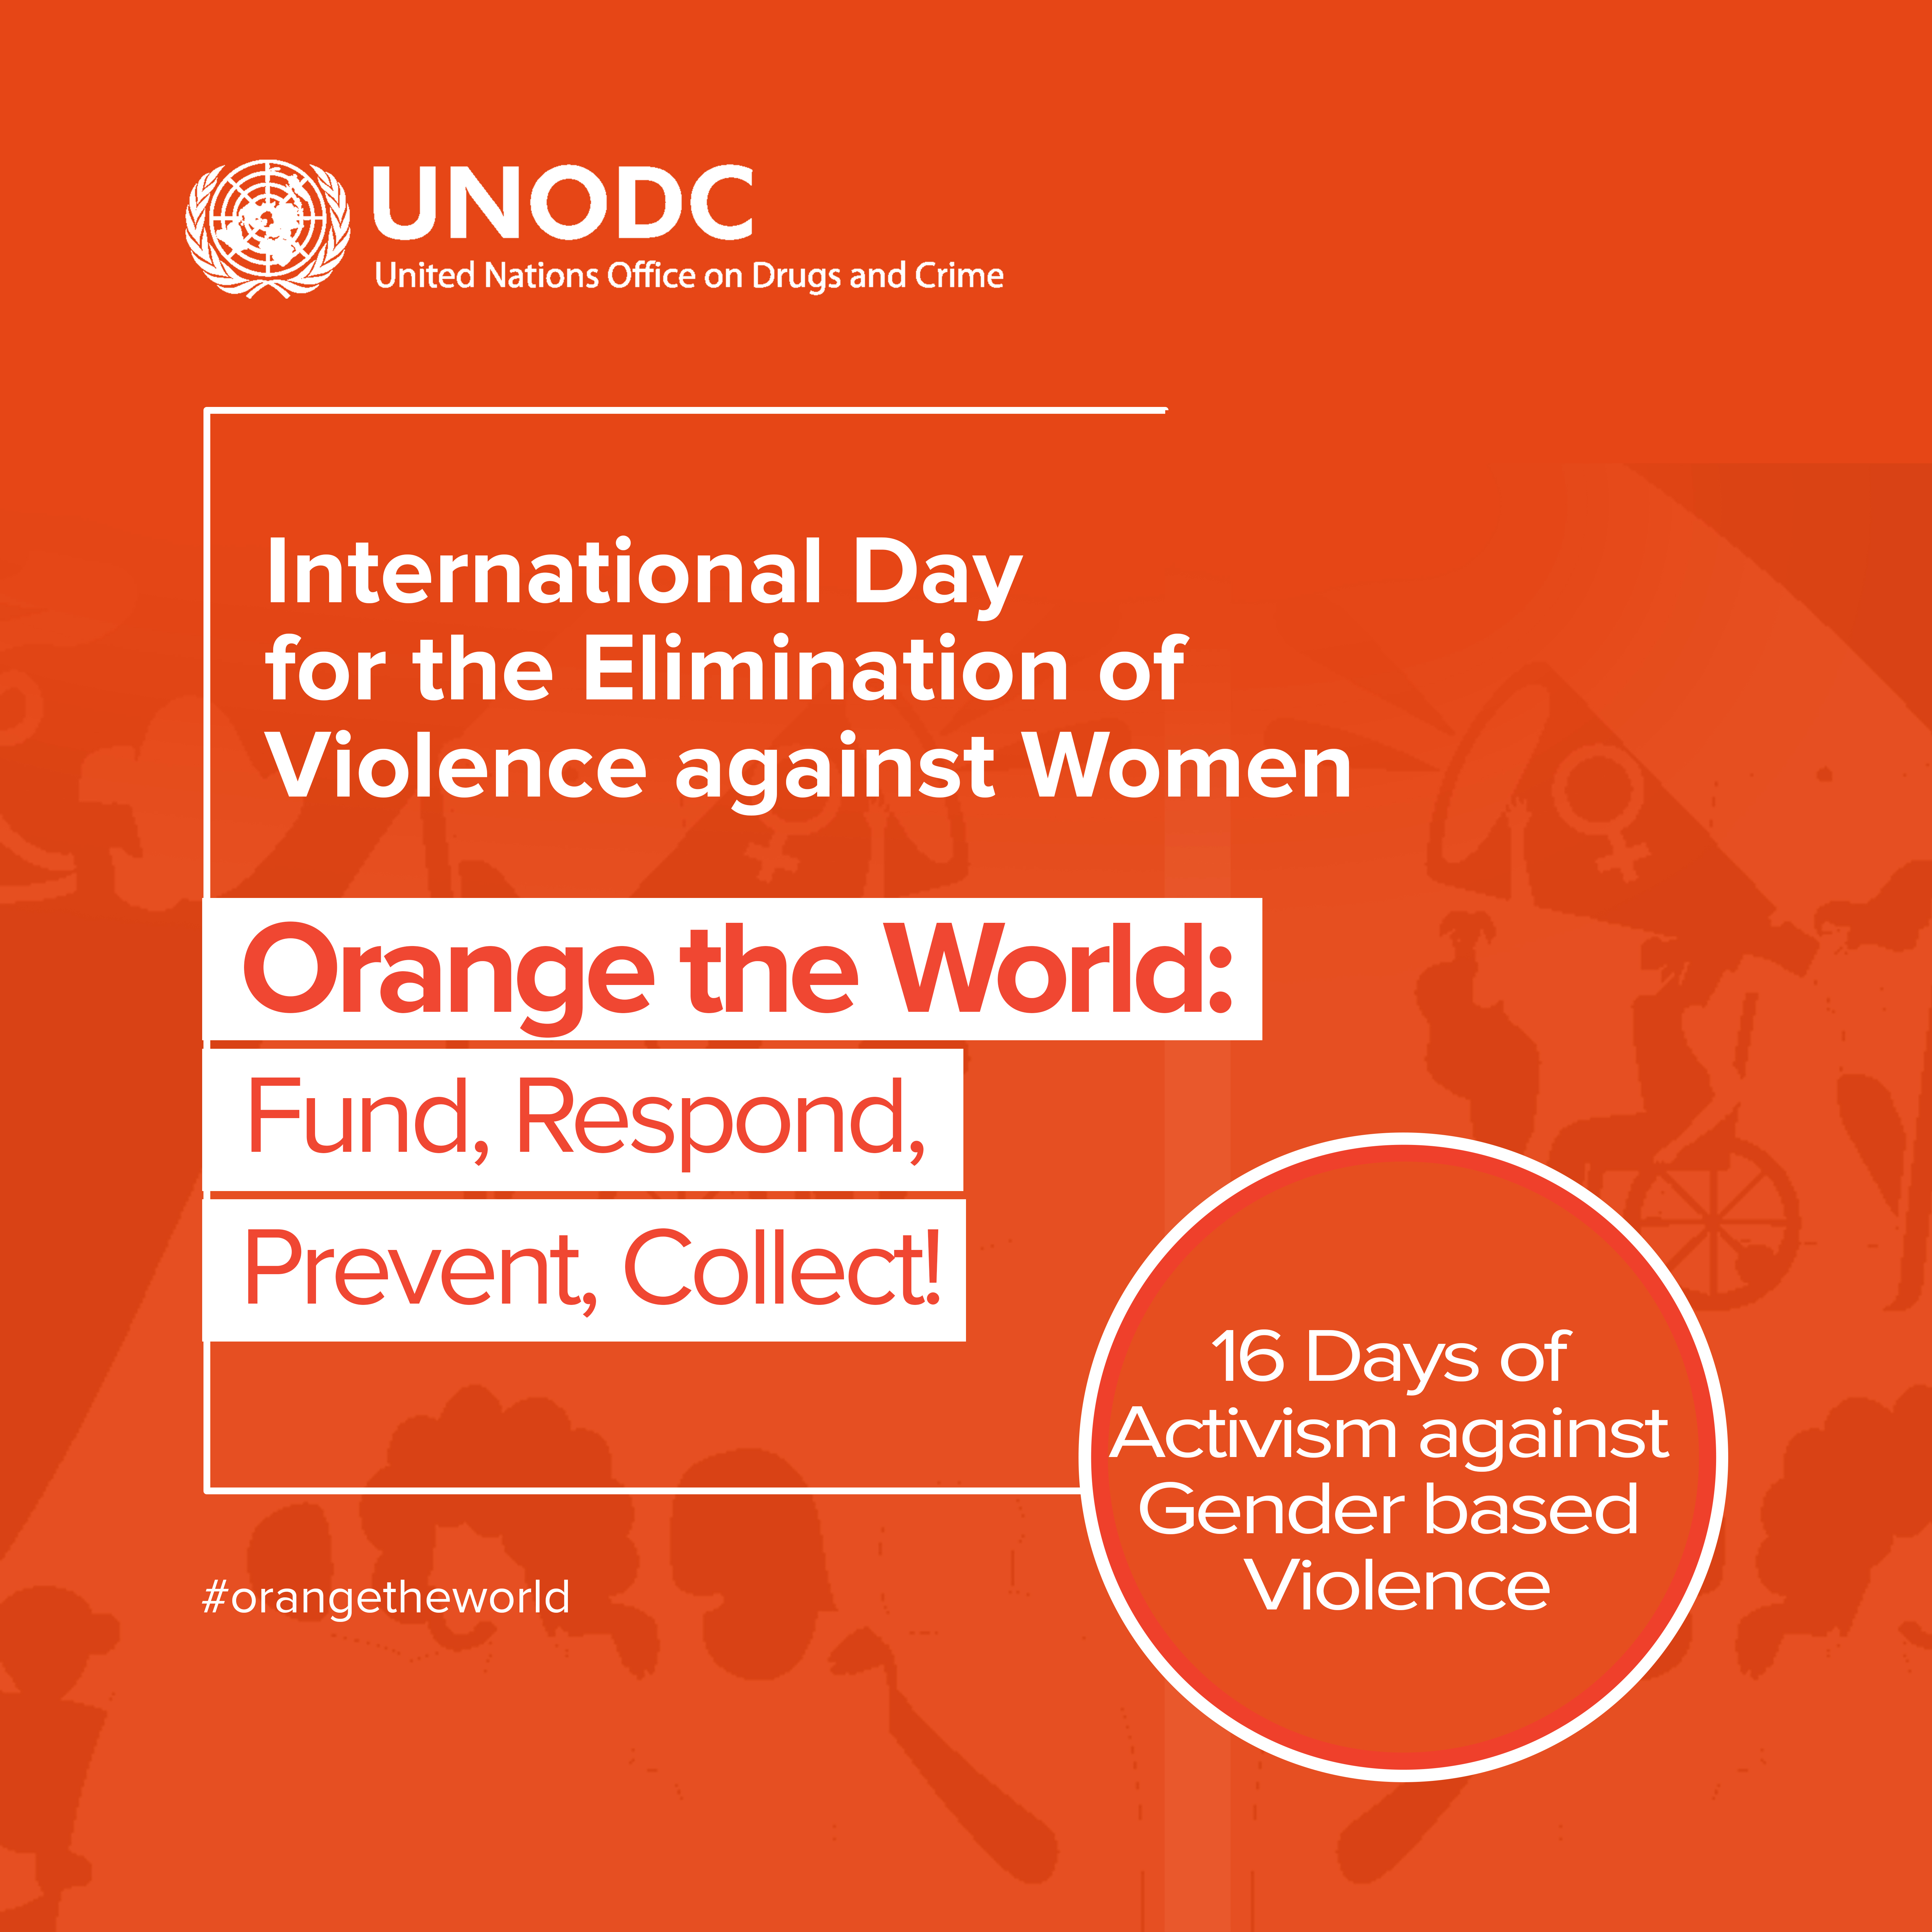 Key Visual of 2020 International Day          for the Elimination of Violence against Women,